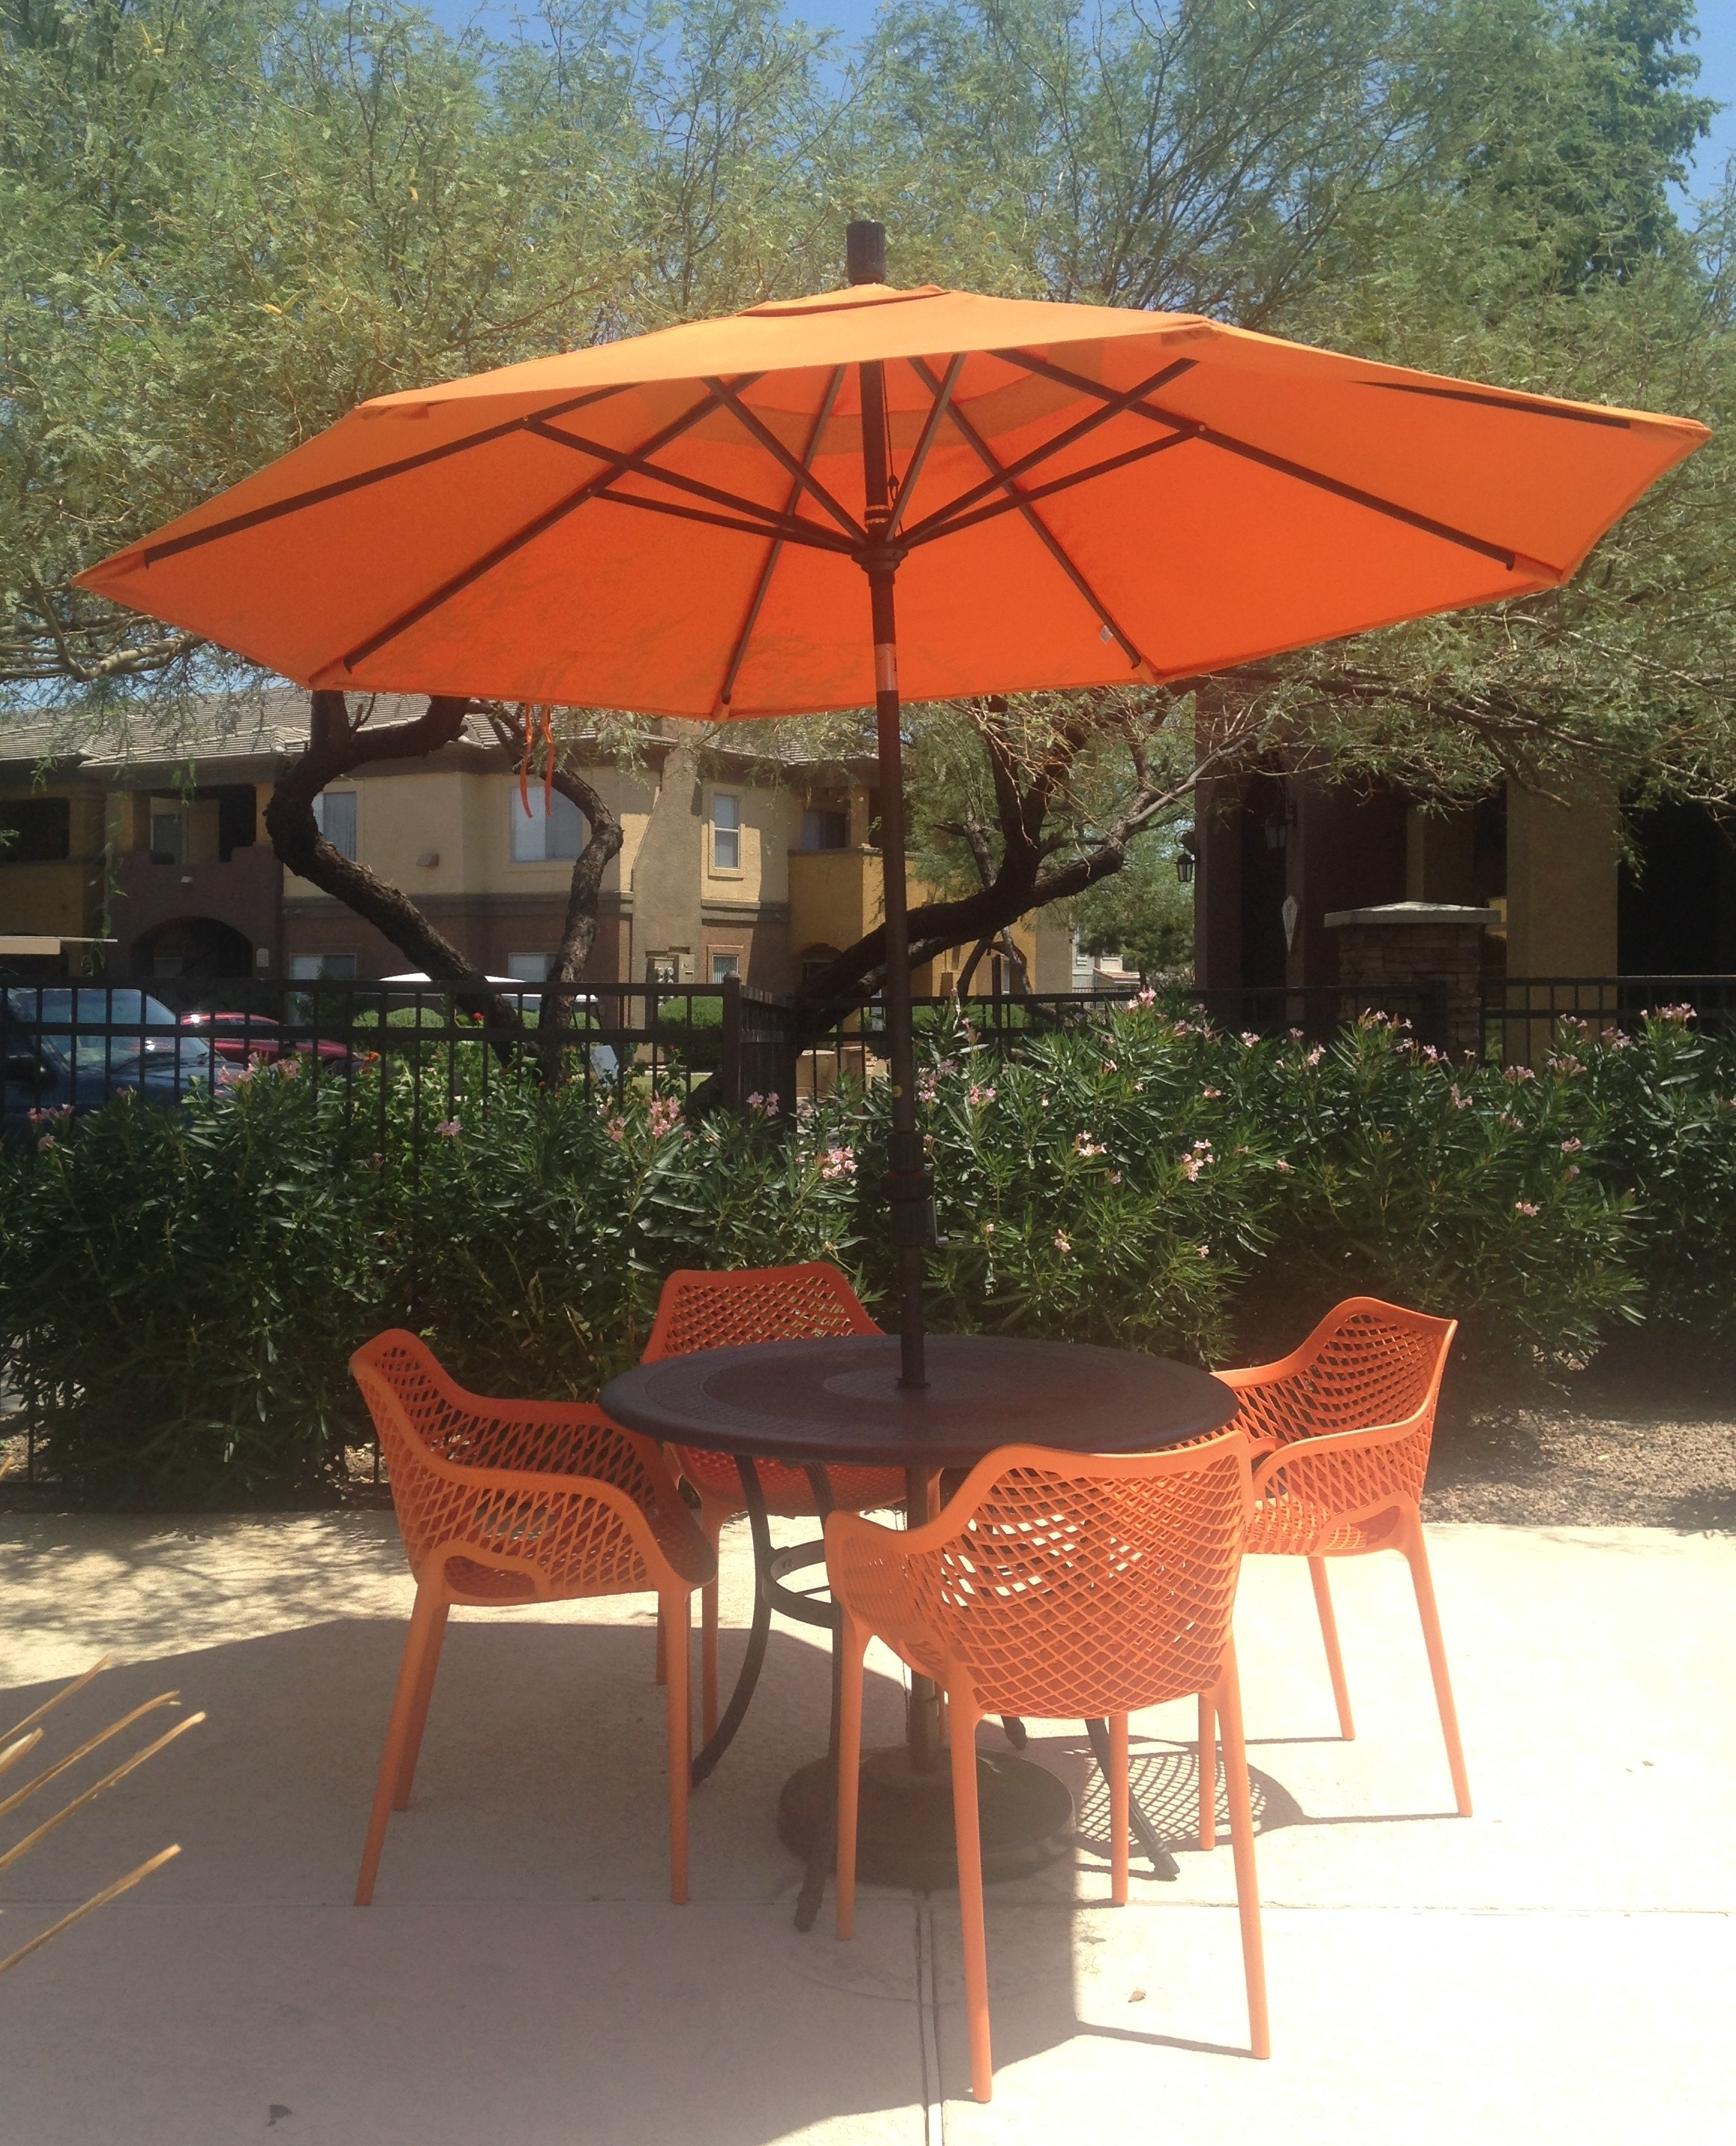 Photo Of Target Patio Umbrella Exterior Orange Target Patio With Well Known Target Patio Umbrellas (View 9 of 20)